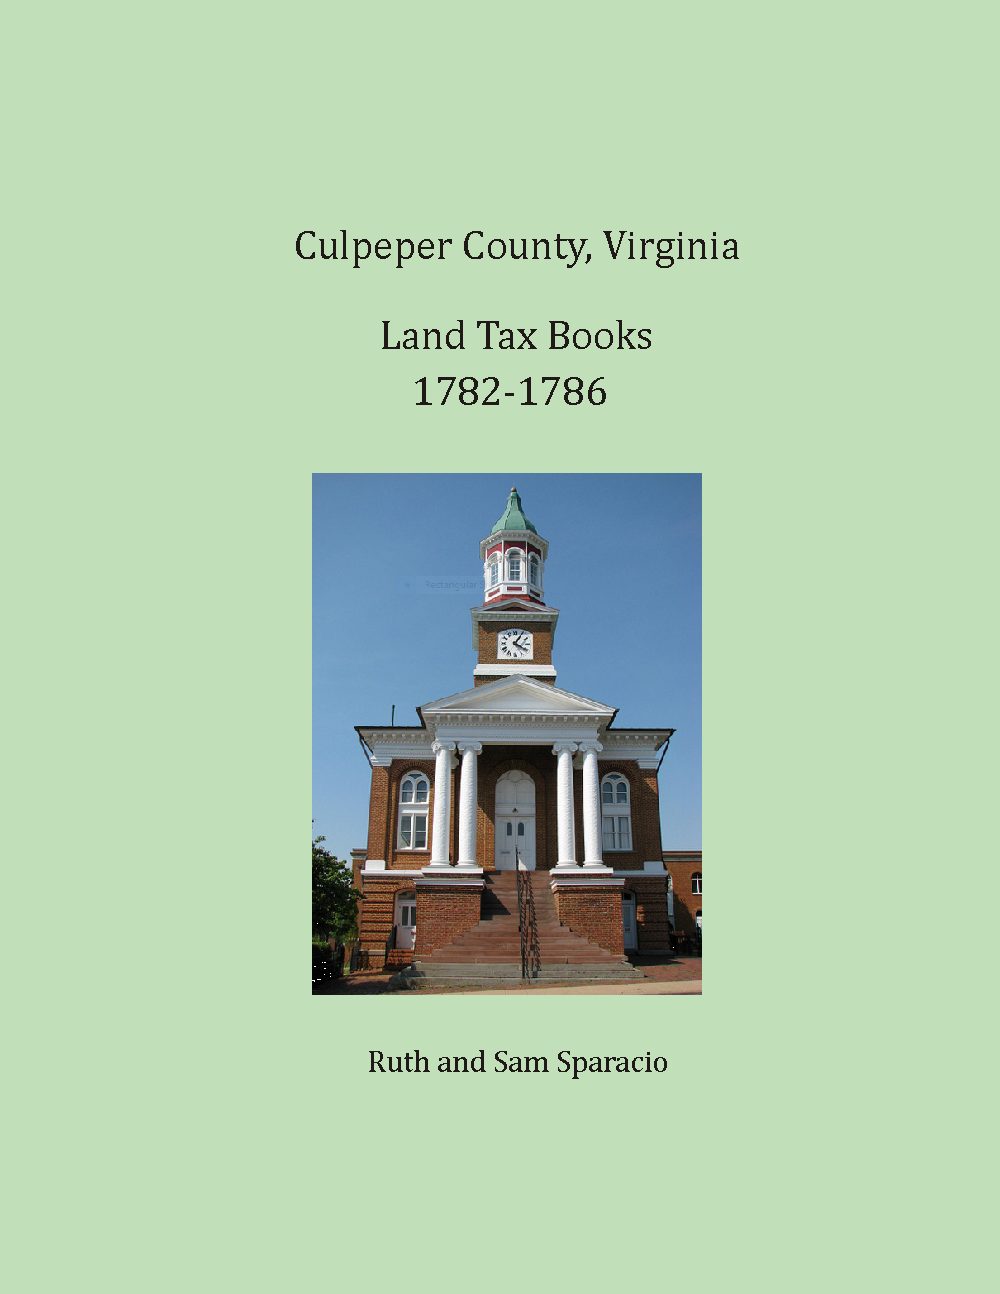 Culpeper County, Virginia Land Tax Book, 1782-1786